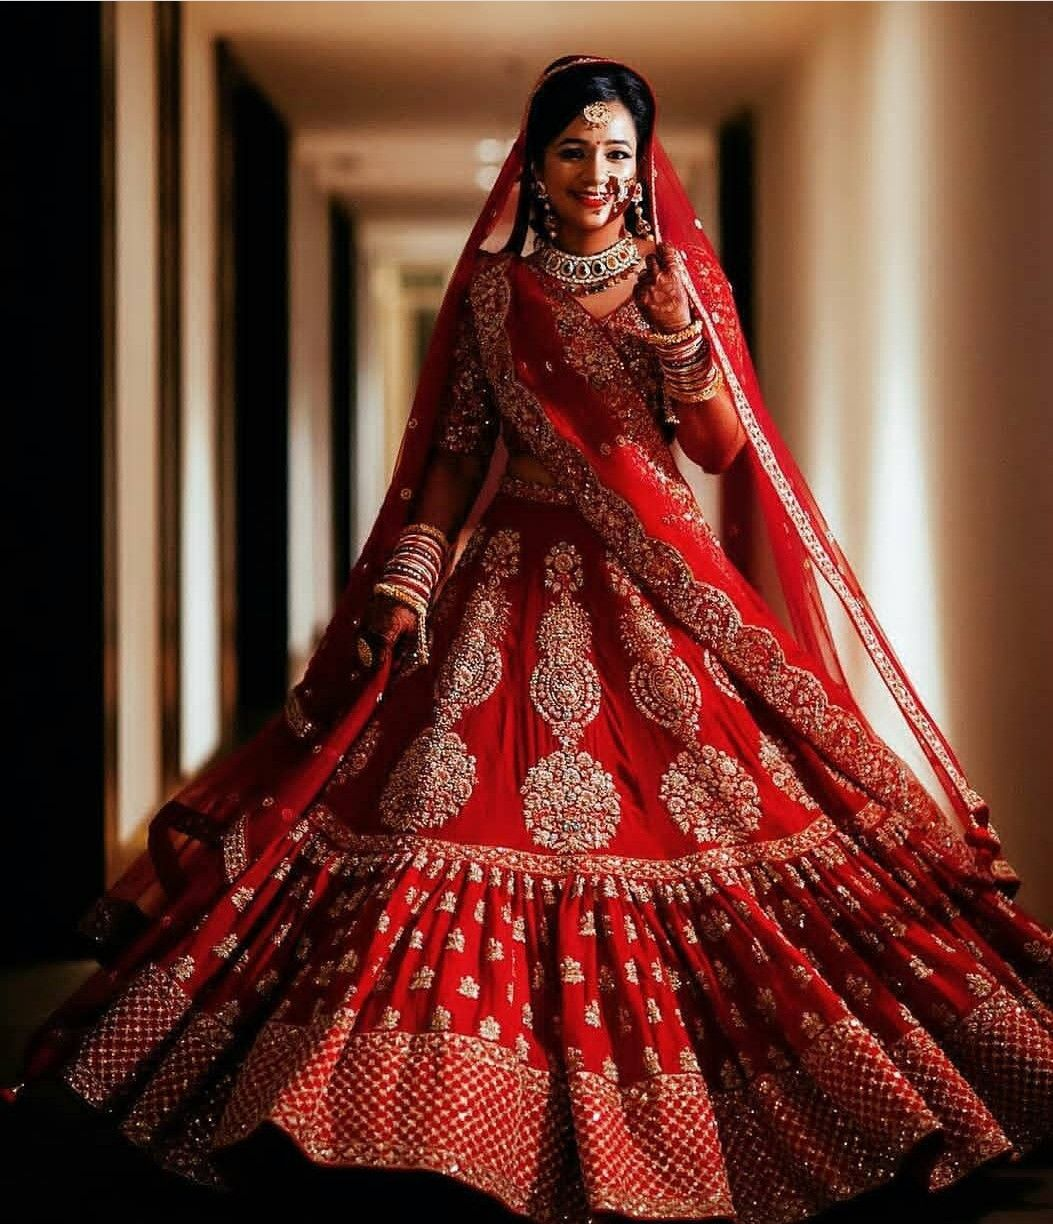 Beautiful India Wedding outfits #Lehenga #saare #gown #outfits